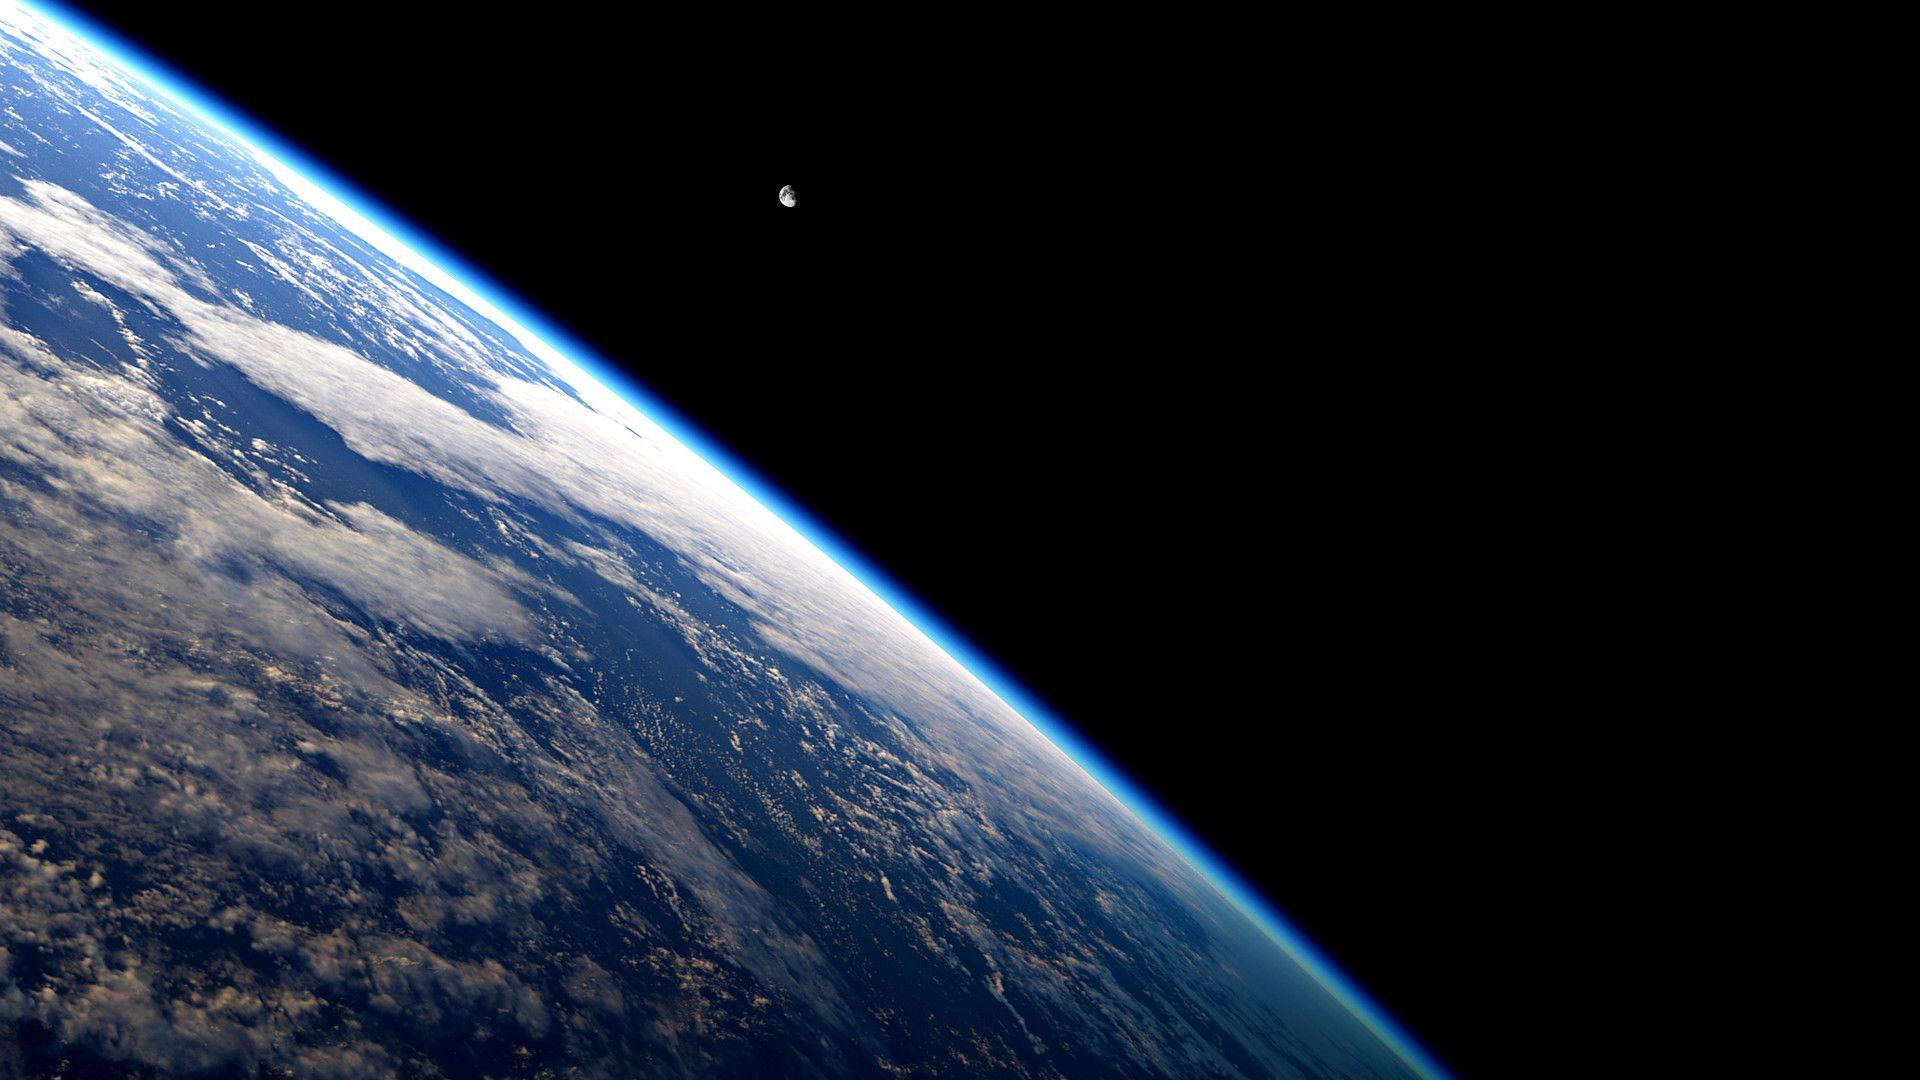 50 earth wallpapers in full hd for free download - Earth hd images from space ...